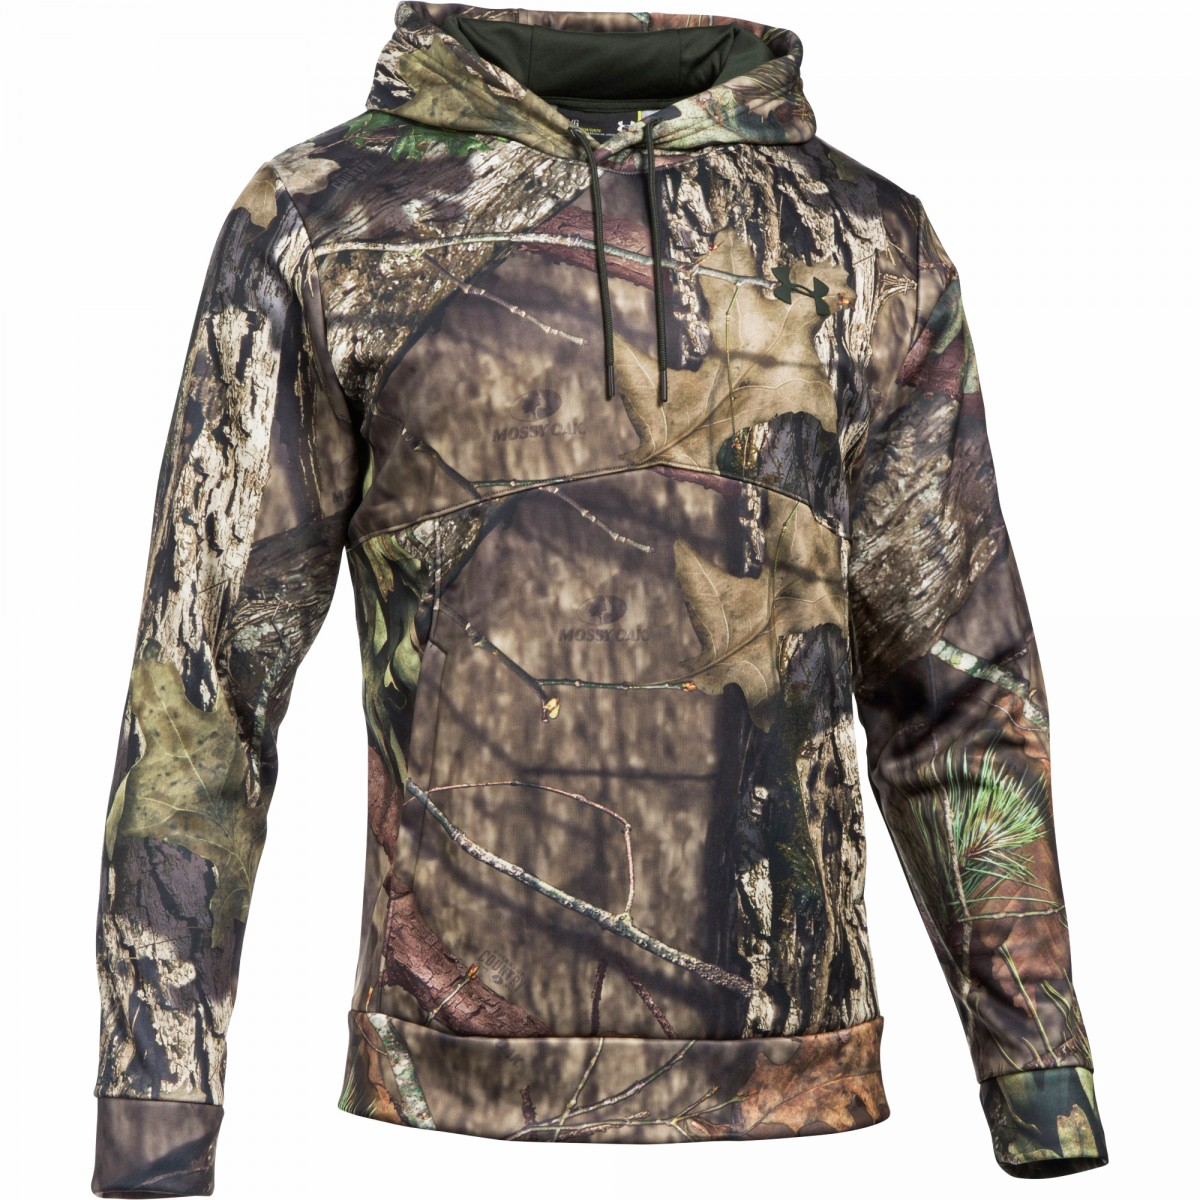 21db0ad6c8 Under Armour Men's Icon Camo Hoodie